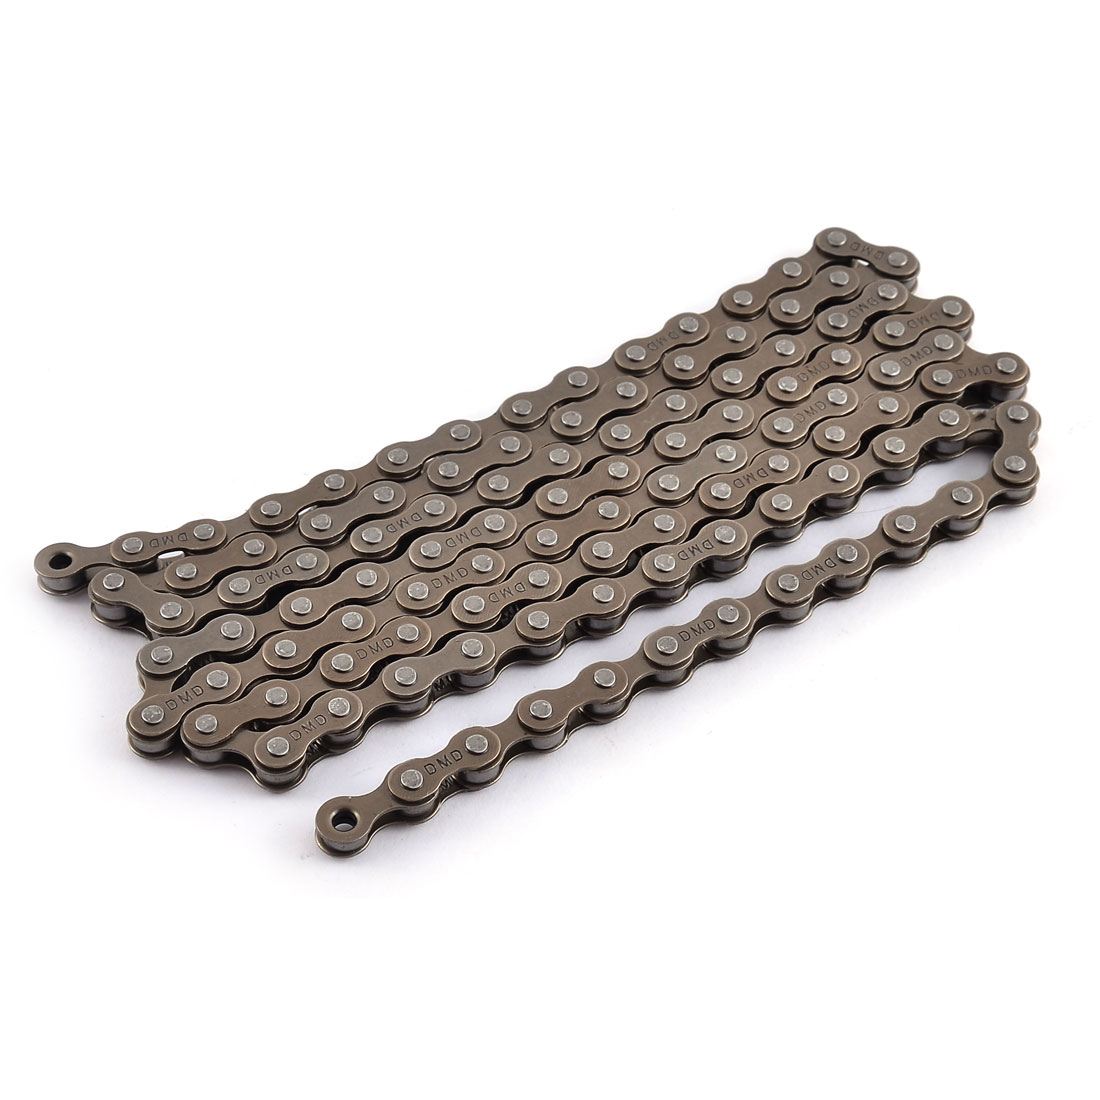 Metal Racing Bicycle Part Single Speed Chain 1/2 Inches x 1/8 Inches 1.36M